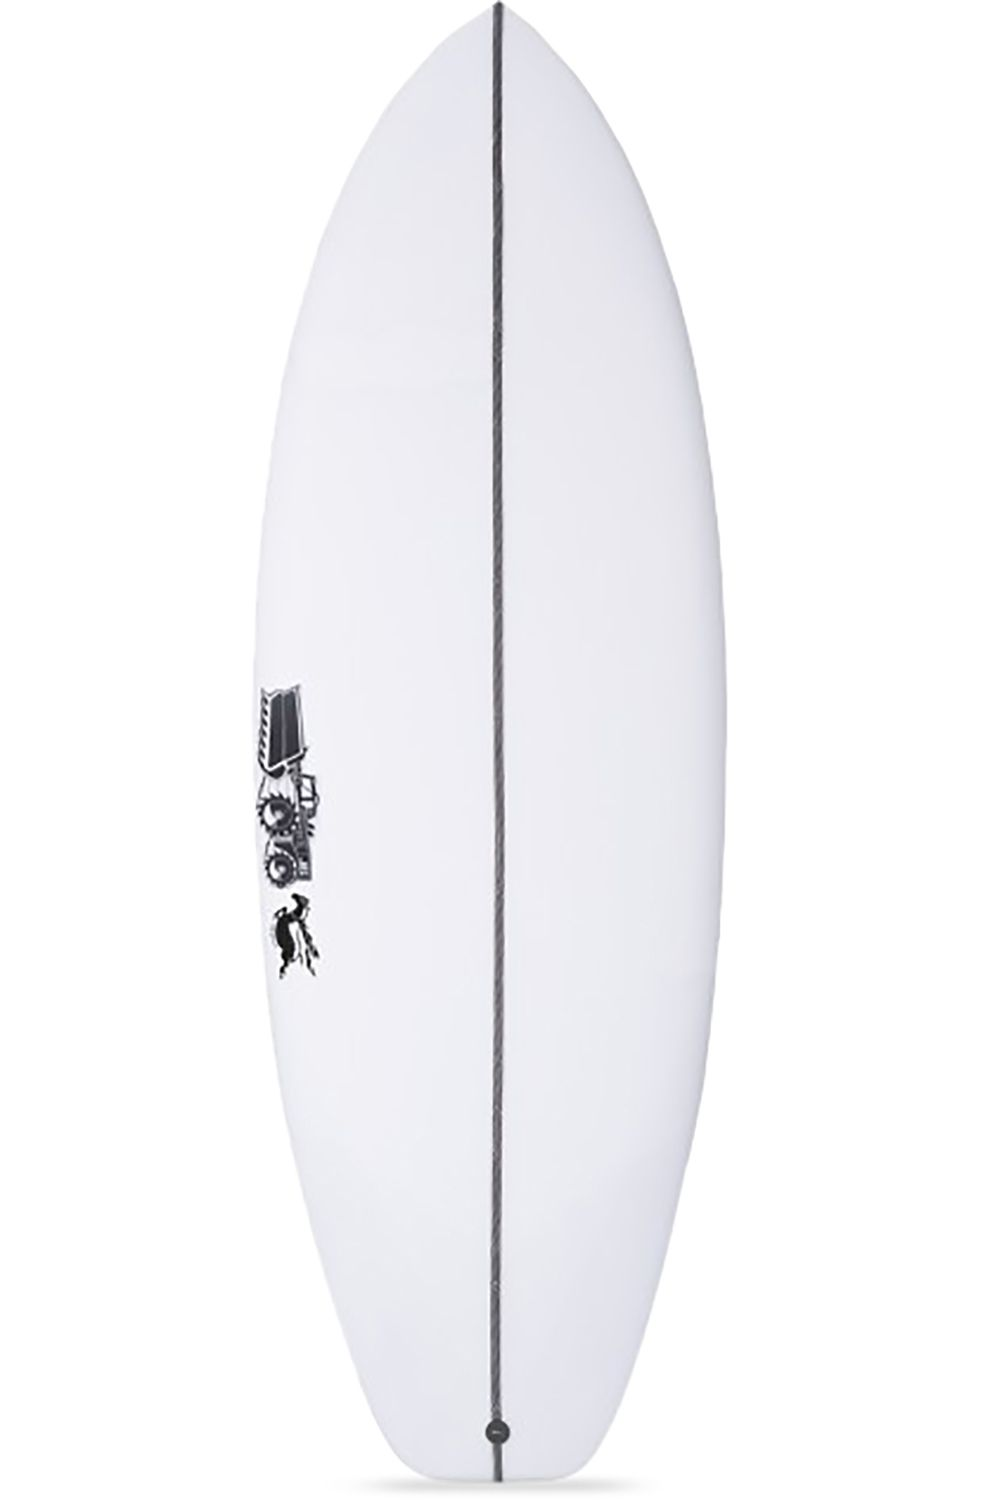 Prancha Surf JS FLAMING PONY Squash Tail - White FCS II Multisystem 5ft10